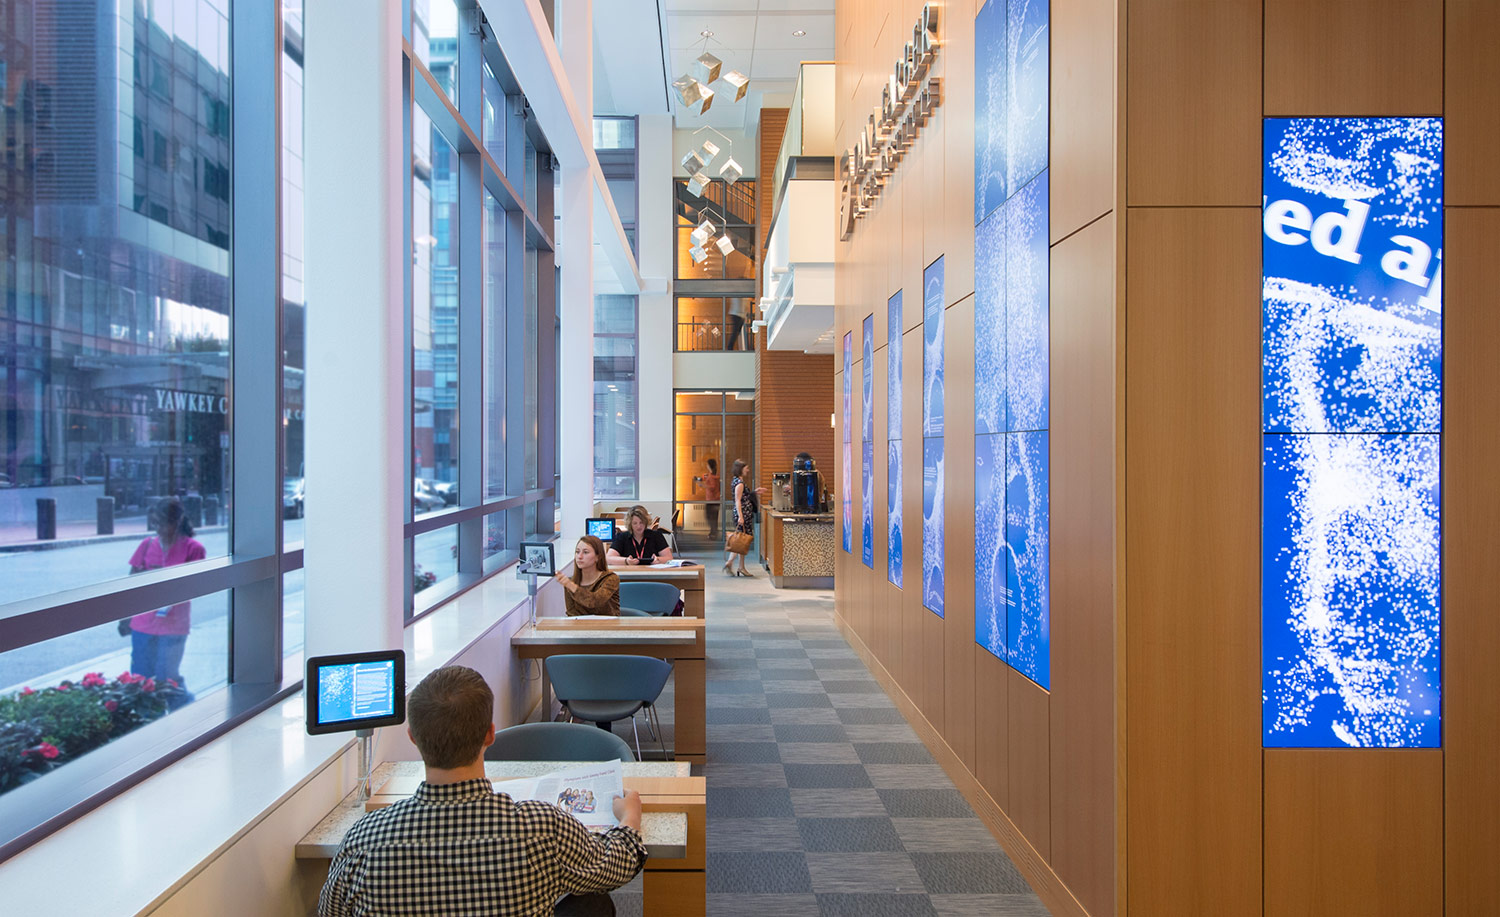 Interactive digital displays in the lobby showcase Dana-Farber Cancer Institute's research, mission and values.